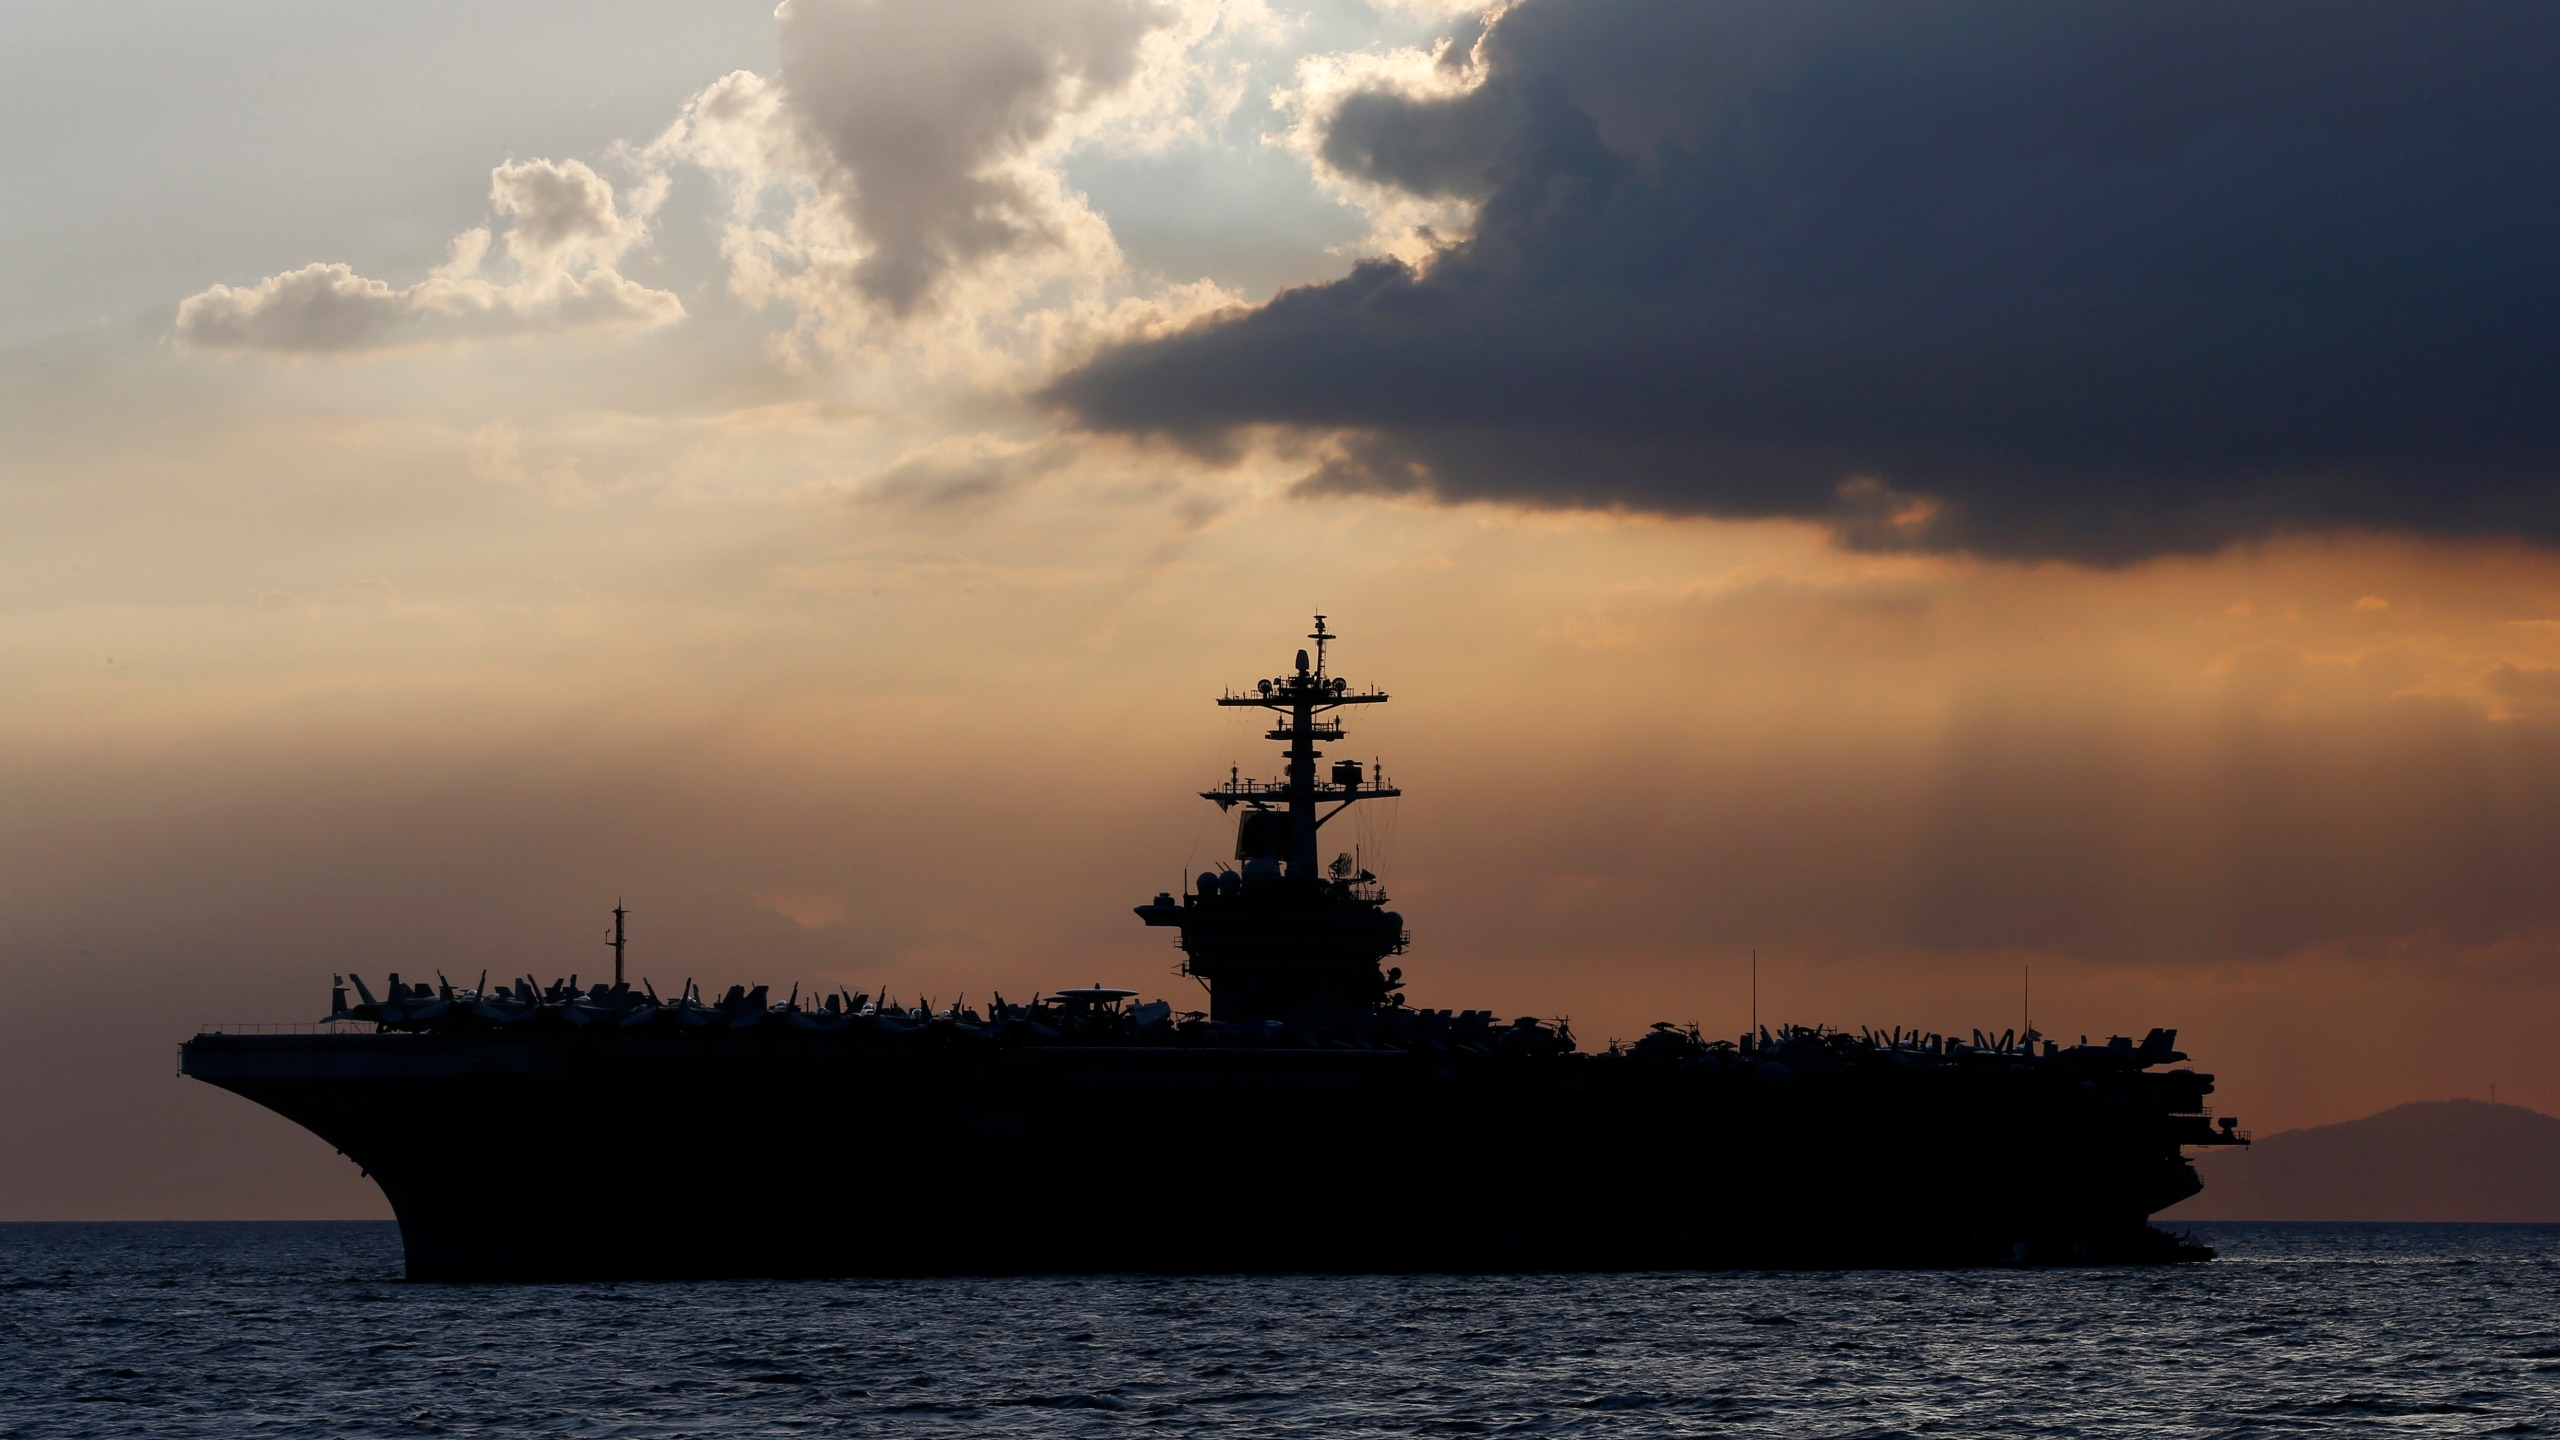 The aircraft carrier USS Theodore Roosevelt anchored off Manila Bay west of Manila, Philippines in 2018. The captain of the U.S. Navy aircraft carrier is asking for permission to isolate the bulk of his roughly 5,000 crew members on shore, which would take the warship out of duty in an effort to save lives. The ship is docked in Guam (AP Photo/Bullit Marquez, File)